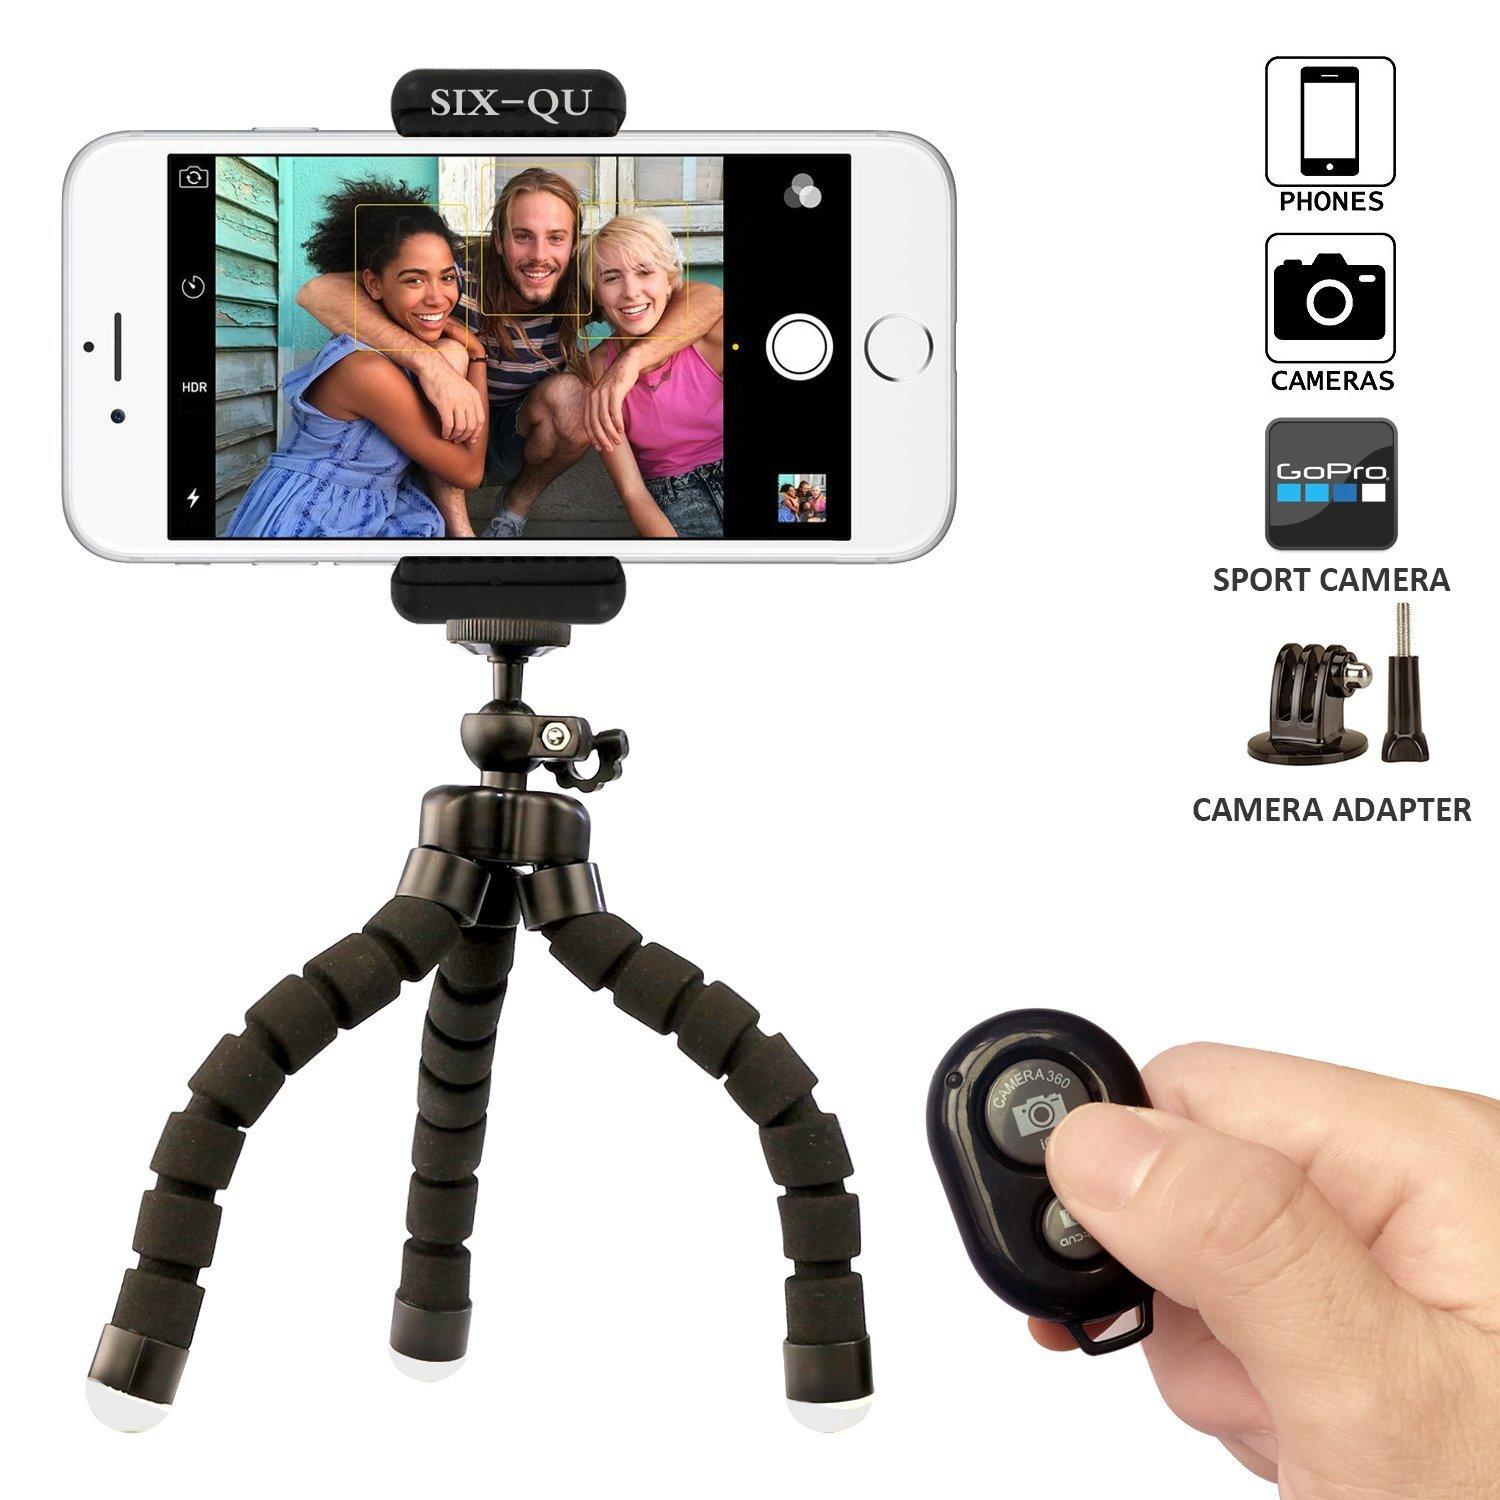 phone tripod six qu flexible phone stand holder with